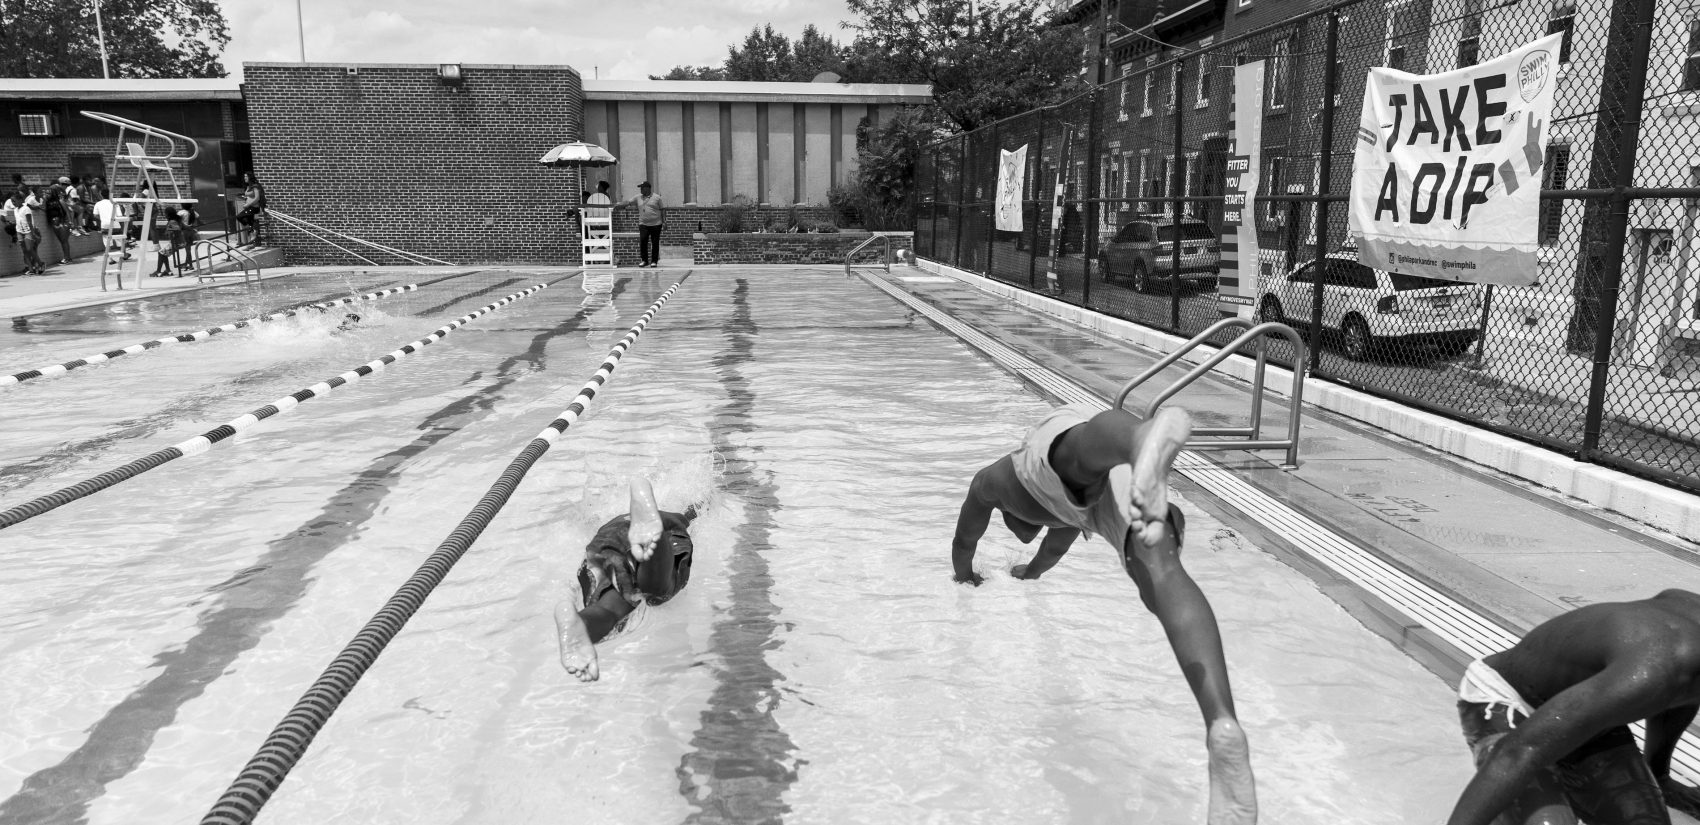 A swim meet hosted by Francisville Playground, which is a mile and a half from Gathers towards Center City Philadelphia. (Photograph by Jessica Kourkounis)